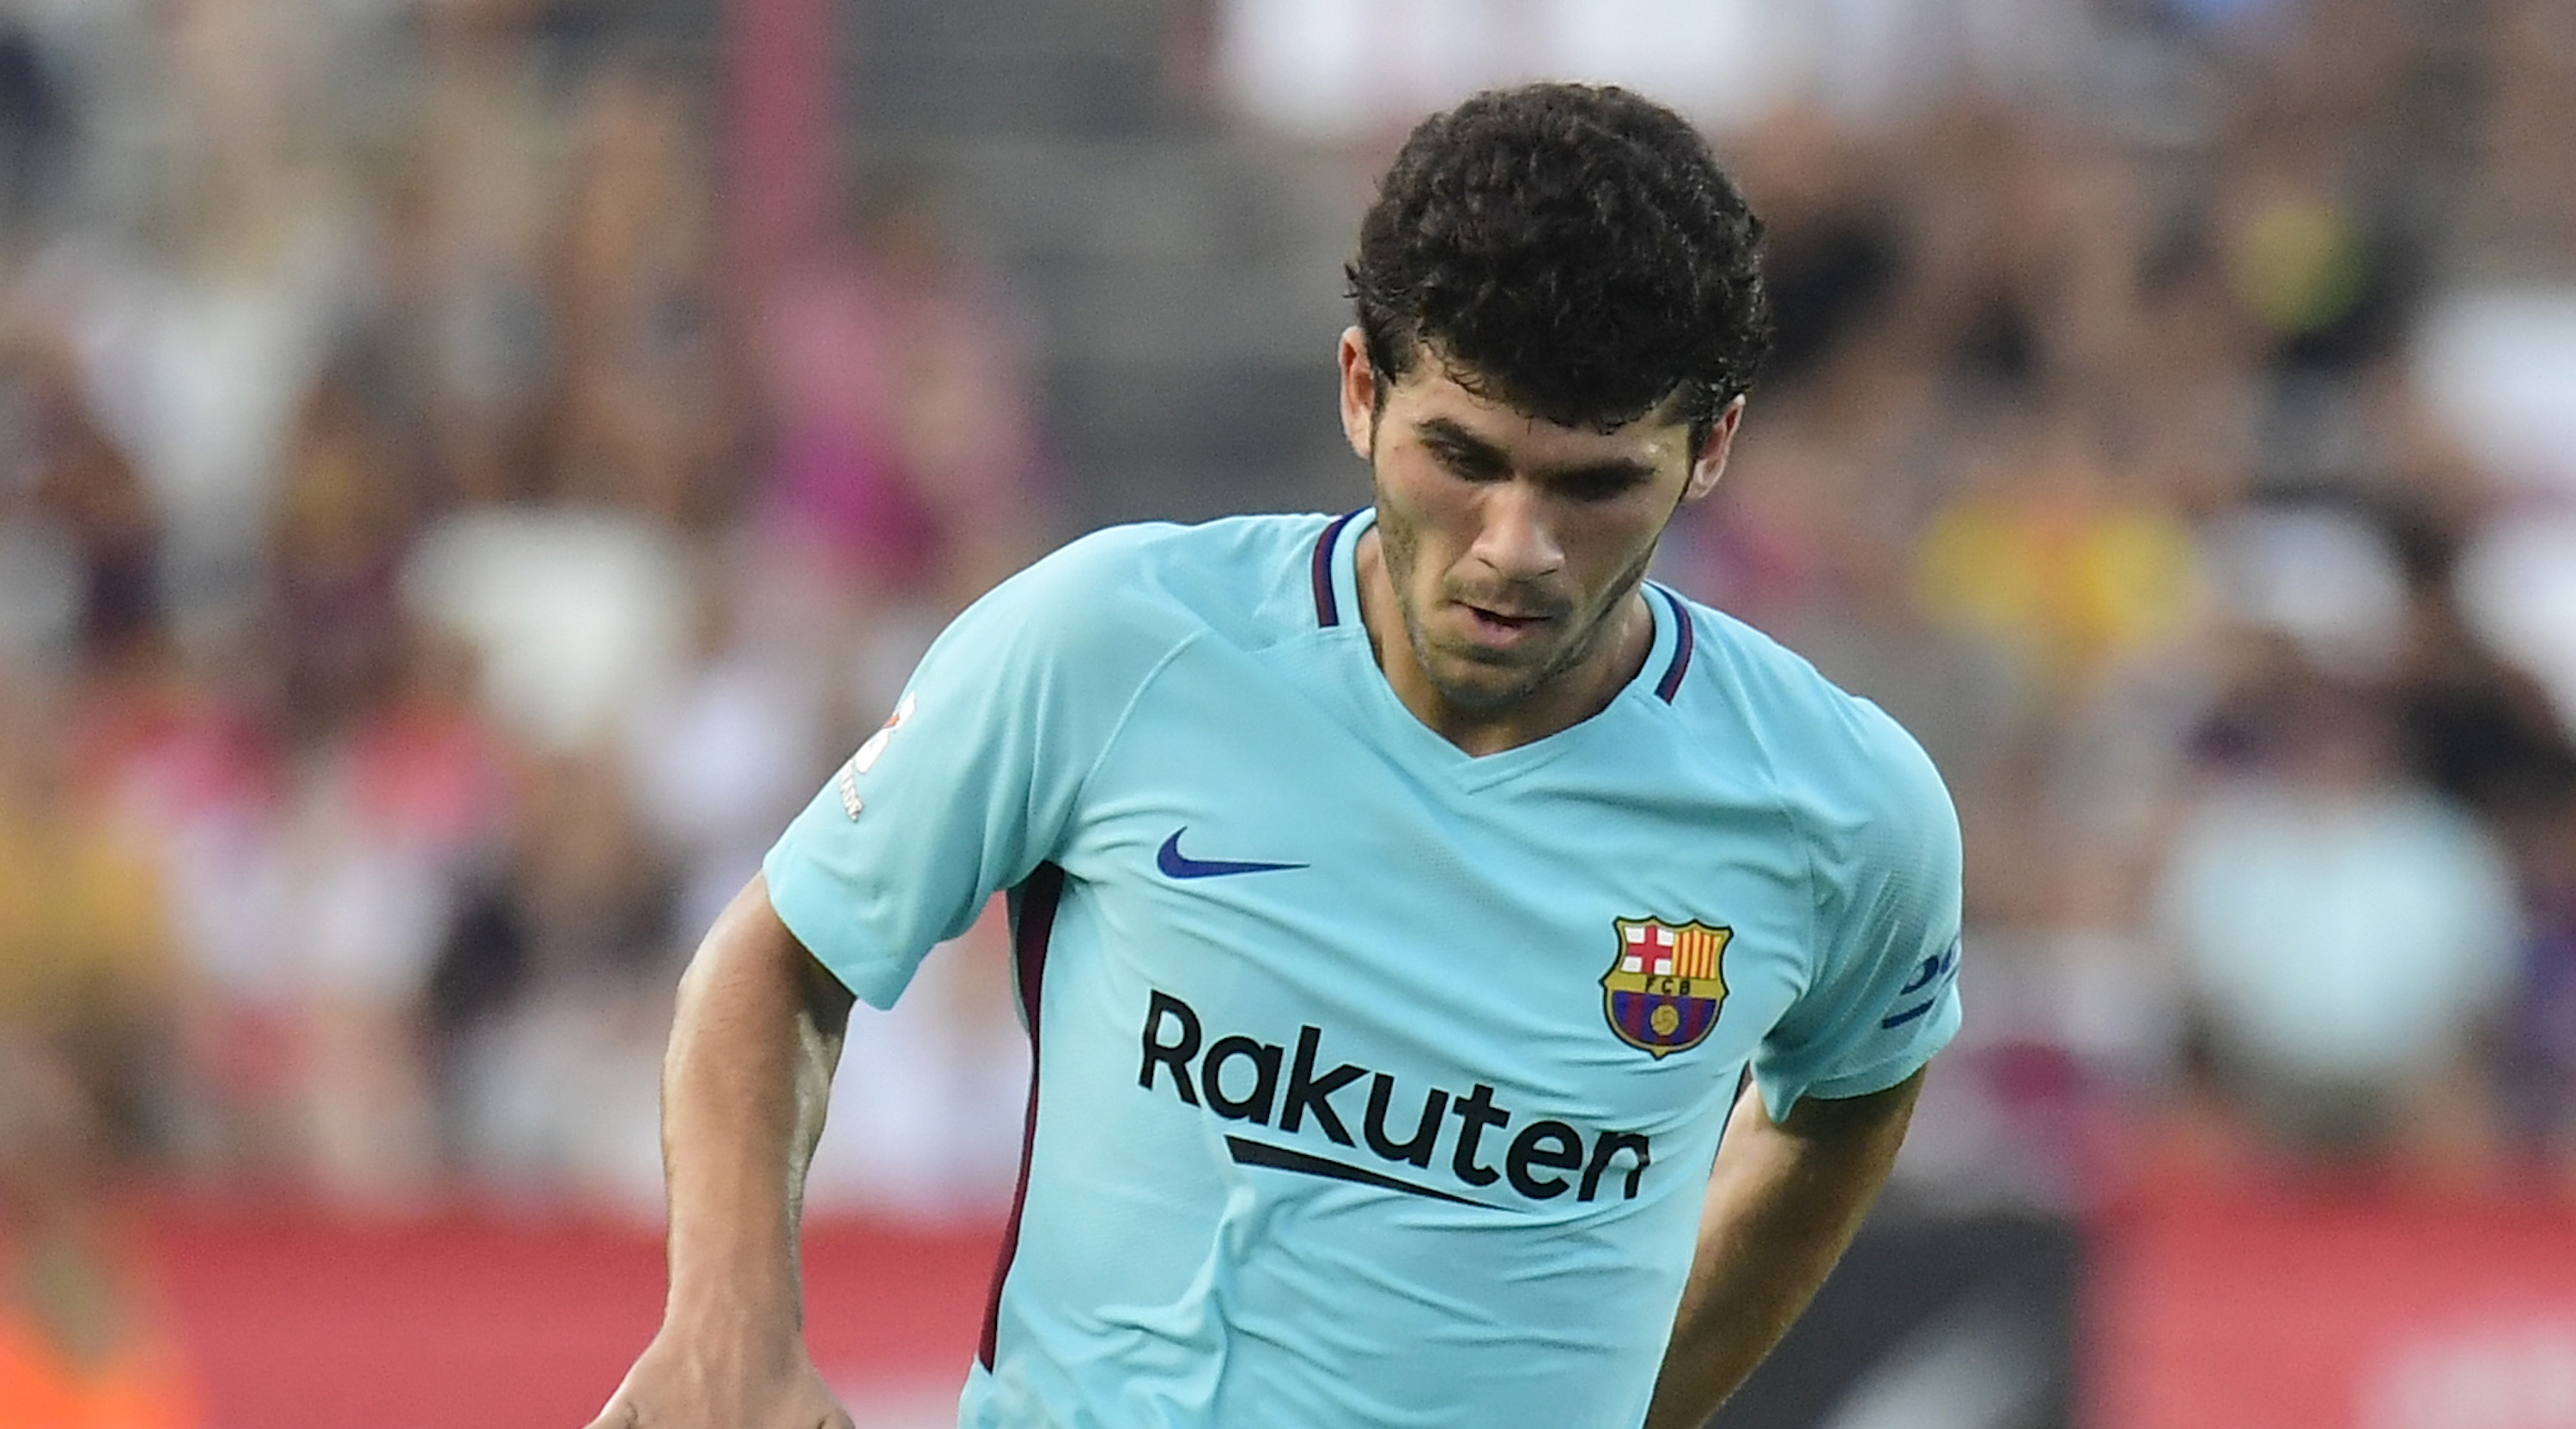 Barcelona's midfielder Carles Alena controls the ball during the friendly football match between Club Gimnastic de Tarragona SAD and FC Barcelona at the Nou Estadi in Tarragona, on August 4, 2017. / AFP PHOTO / JOSE JORDAN (Photo credit should read JOSE JORDAN/AFP/Getty Images)